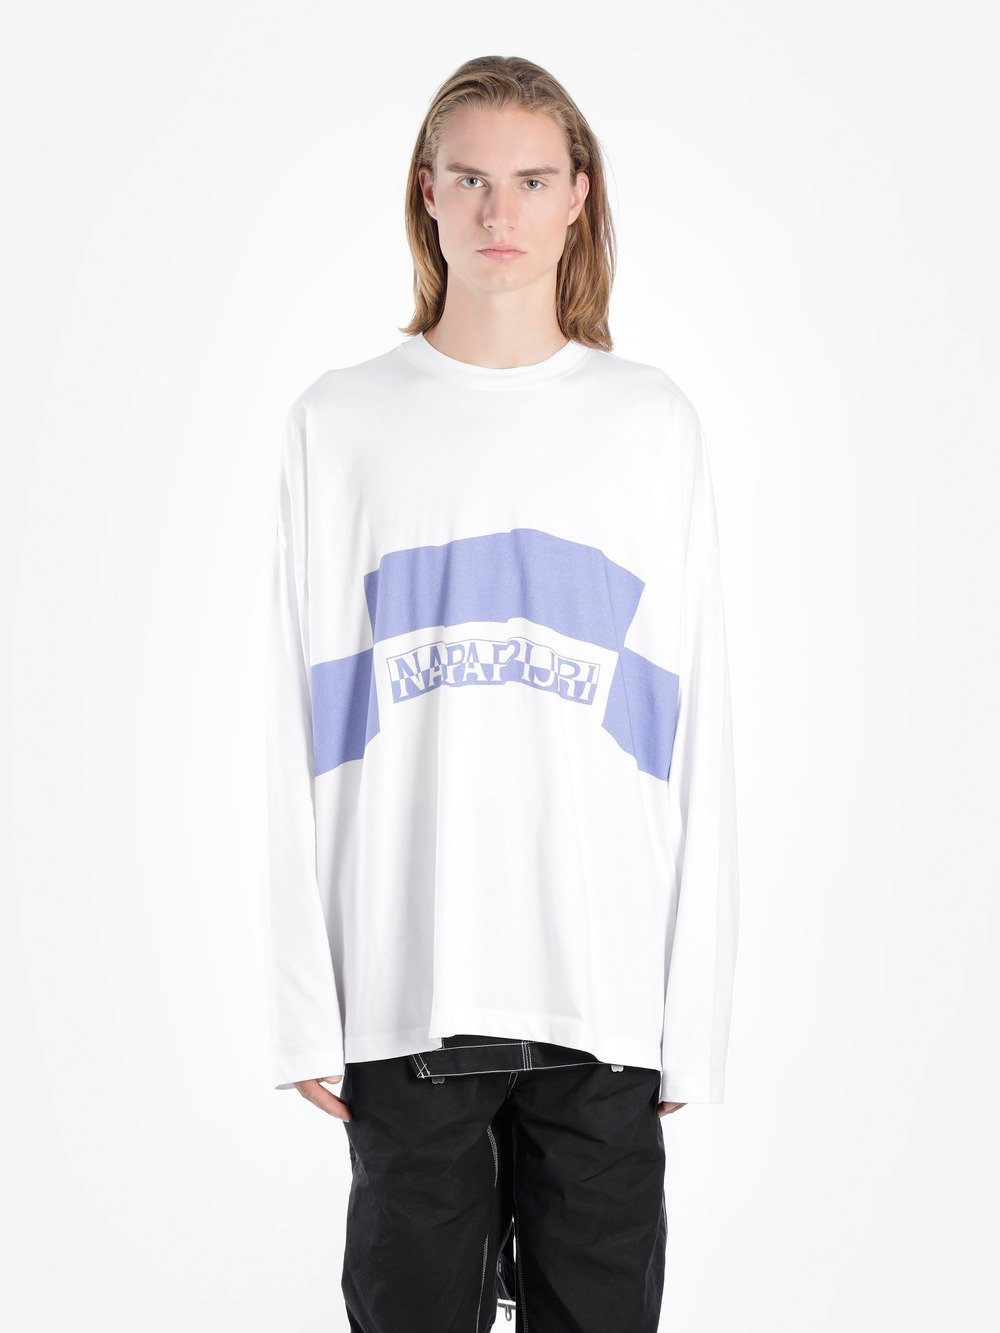 NAPA BY MARTINE ROSE WHITE AND BLUE LONG SLEEVE SIRI T-SHIRT